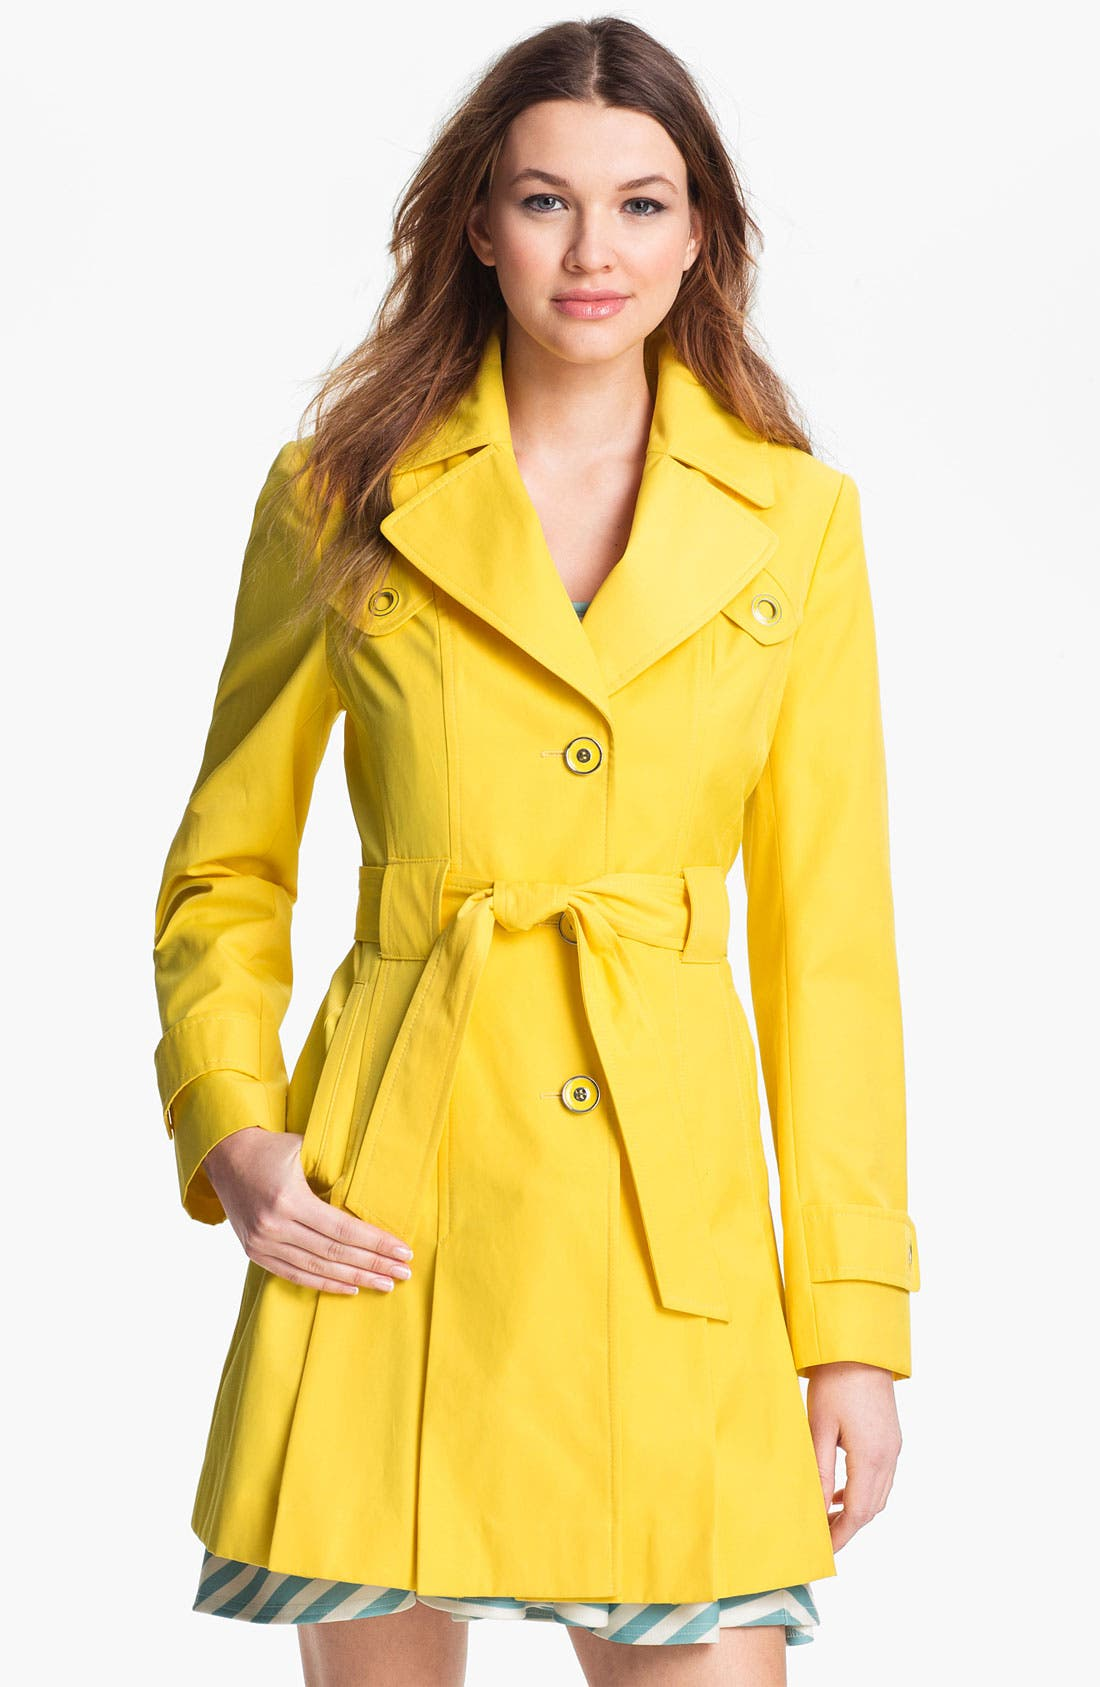 Alternate Image 1 Selected - Via Spiga Pleated Trench Coat (Regular & Petite)